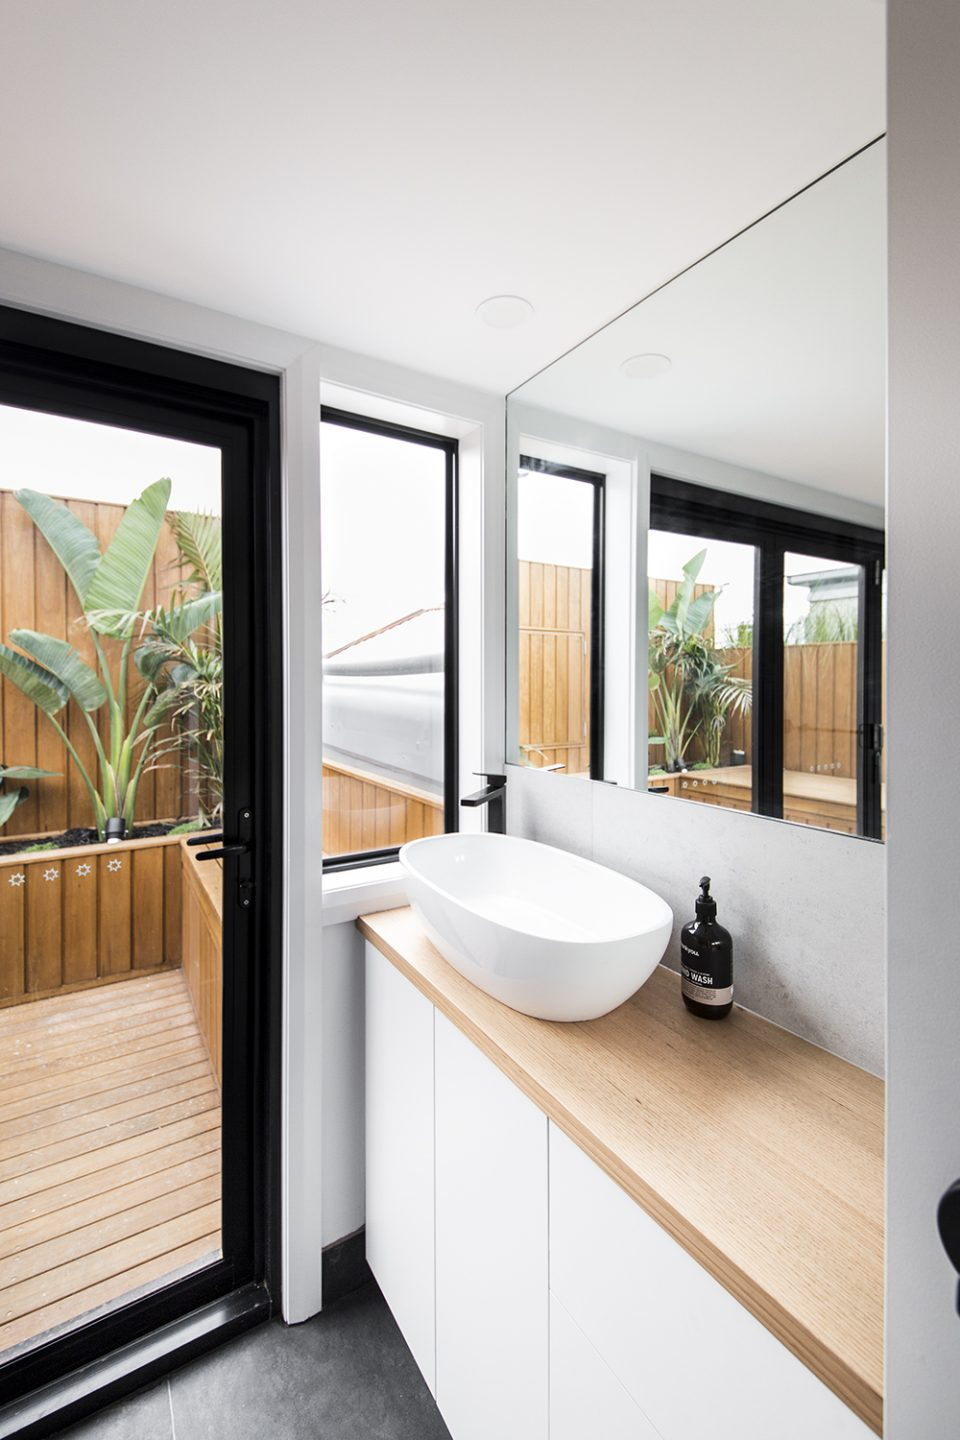 View our gallery for inspiration m j harris group for Bathroom renovation companies melbourne